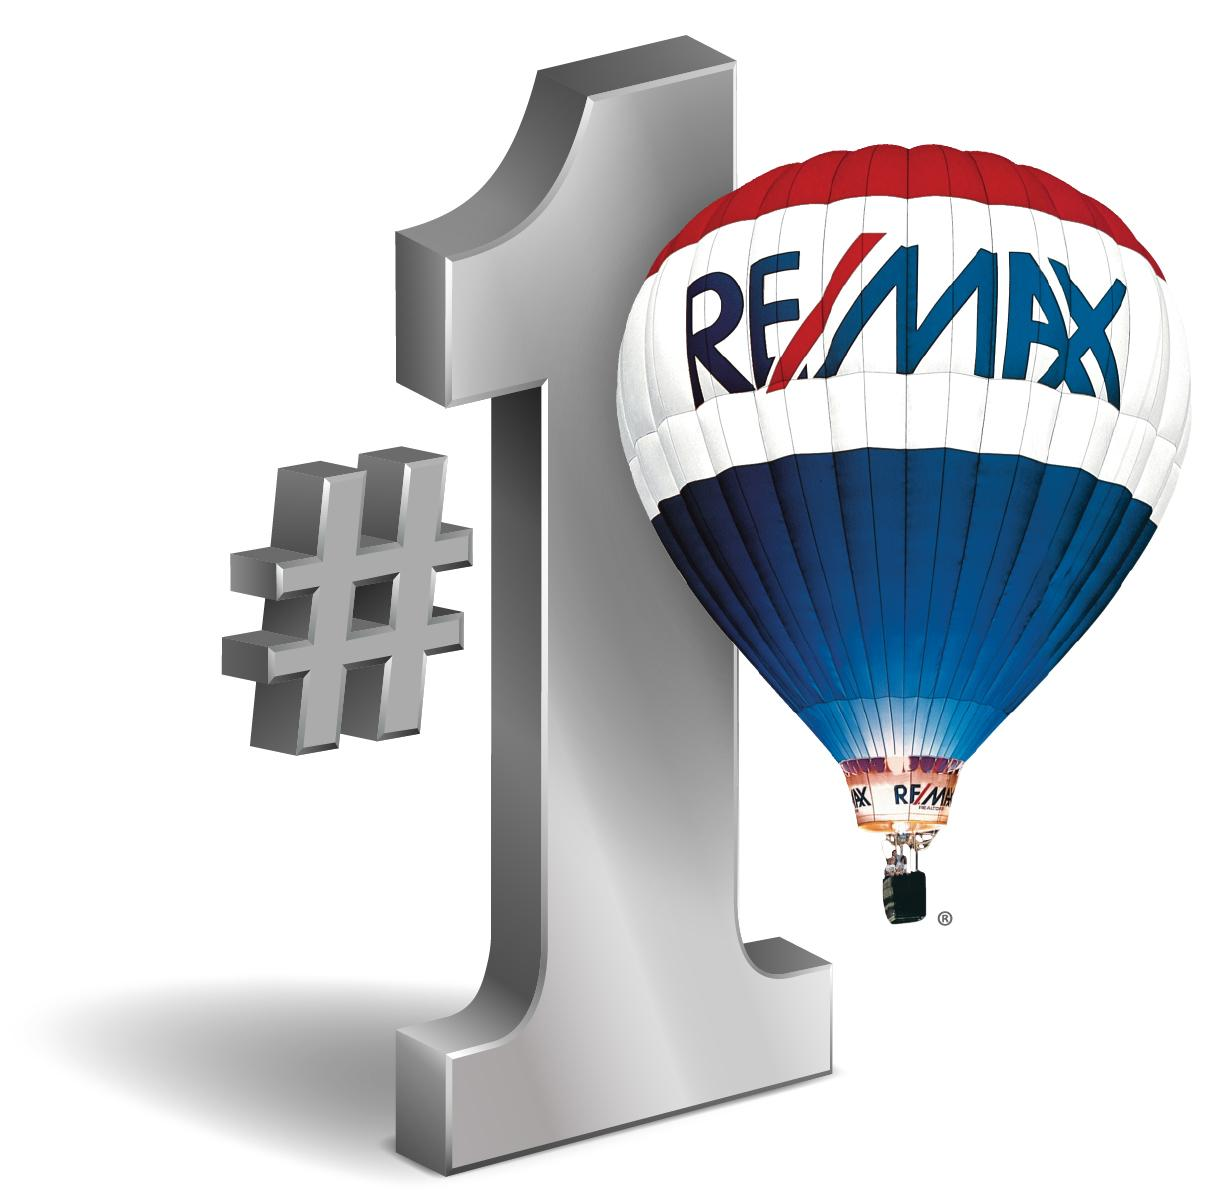 073860_REMAX_Number_One_3D_Chrome_RGB.jpg